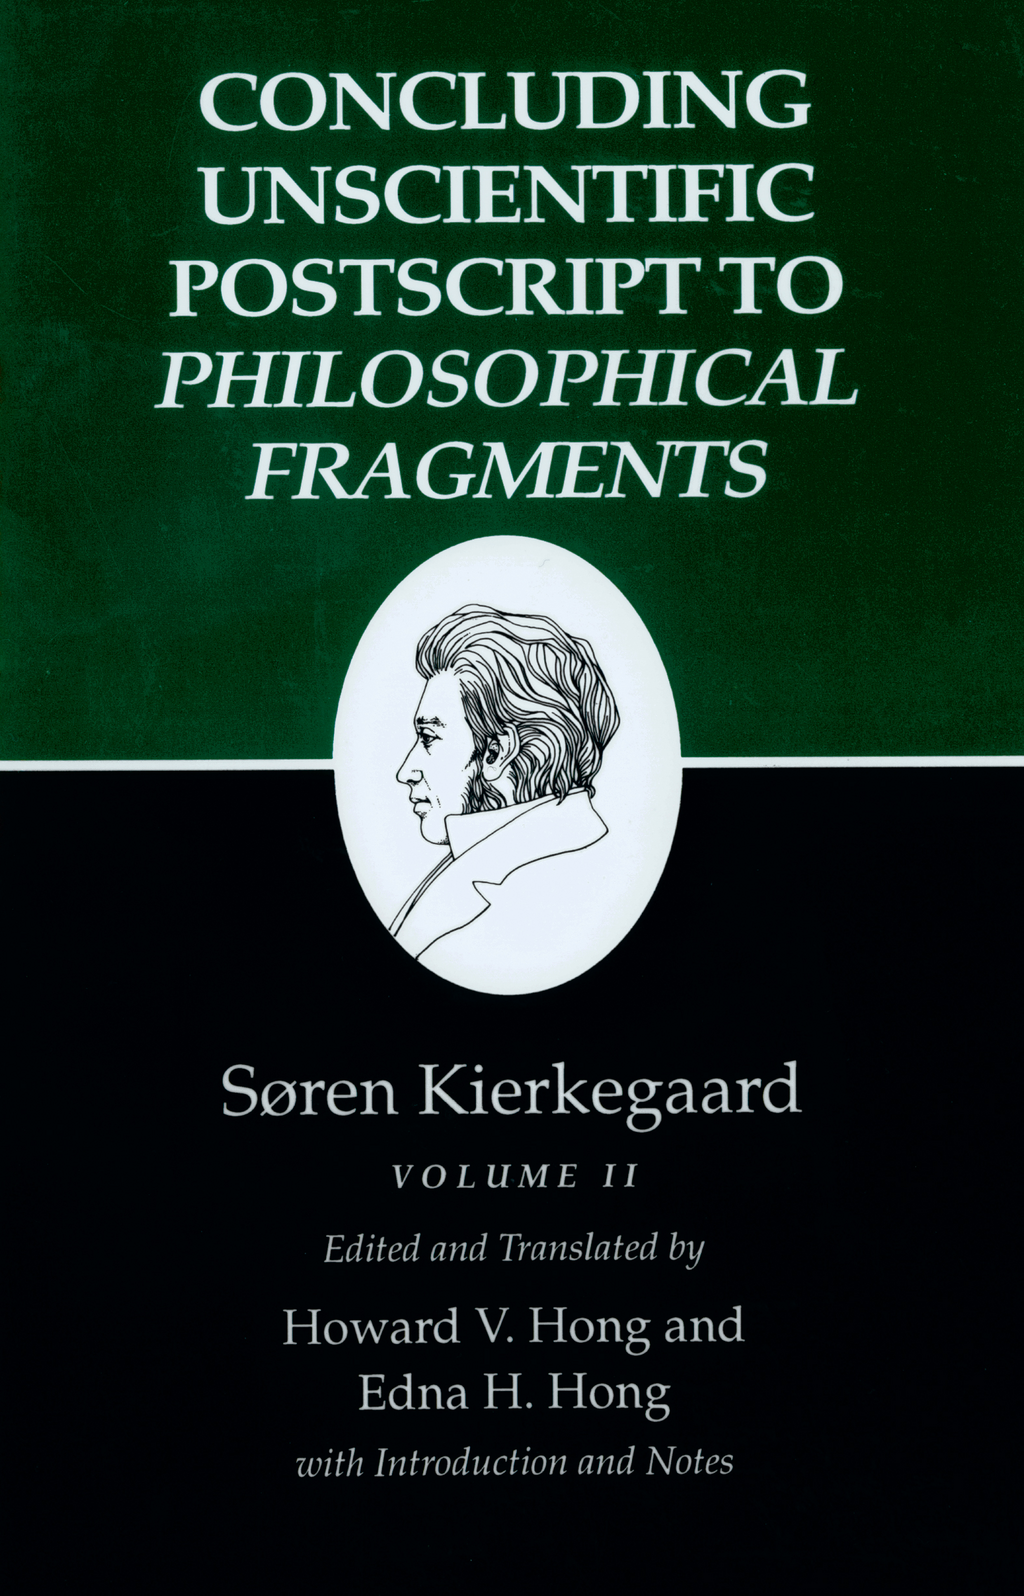 Kierkegaard's Writings, XII: Concluding Unscientific Postscript to Philosophical Fragments, Volume II